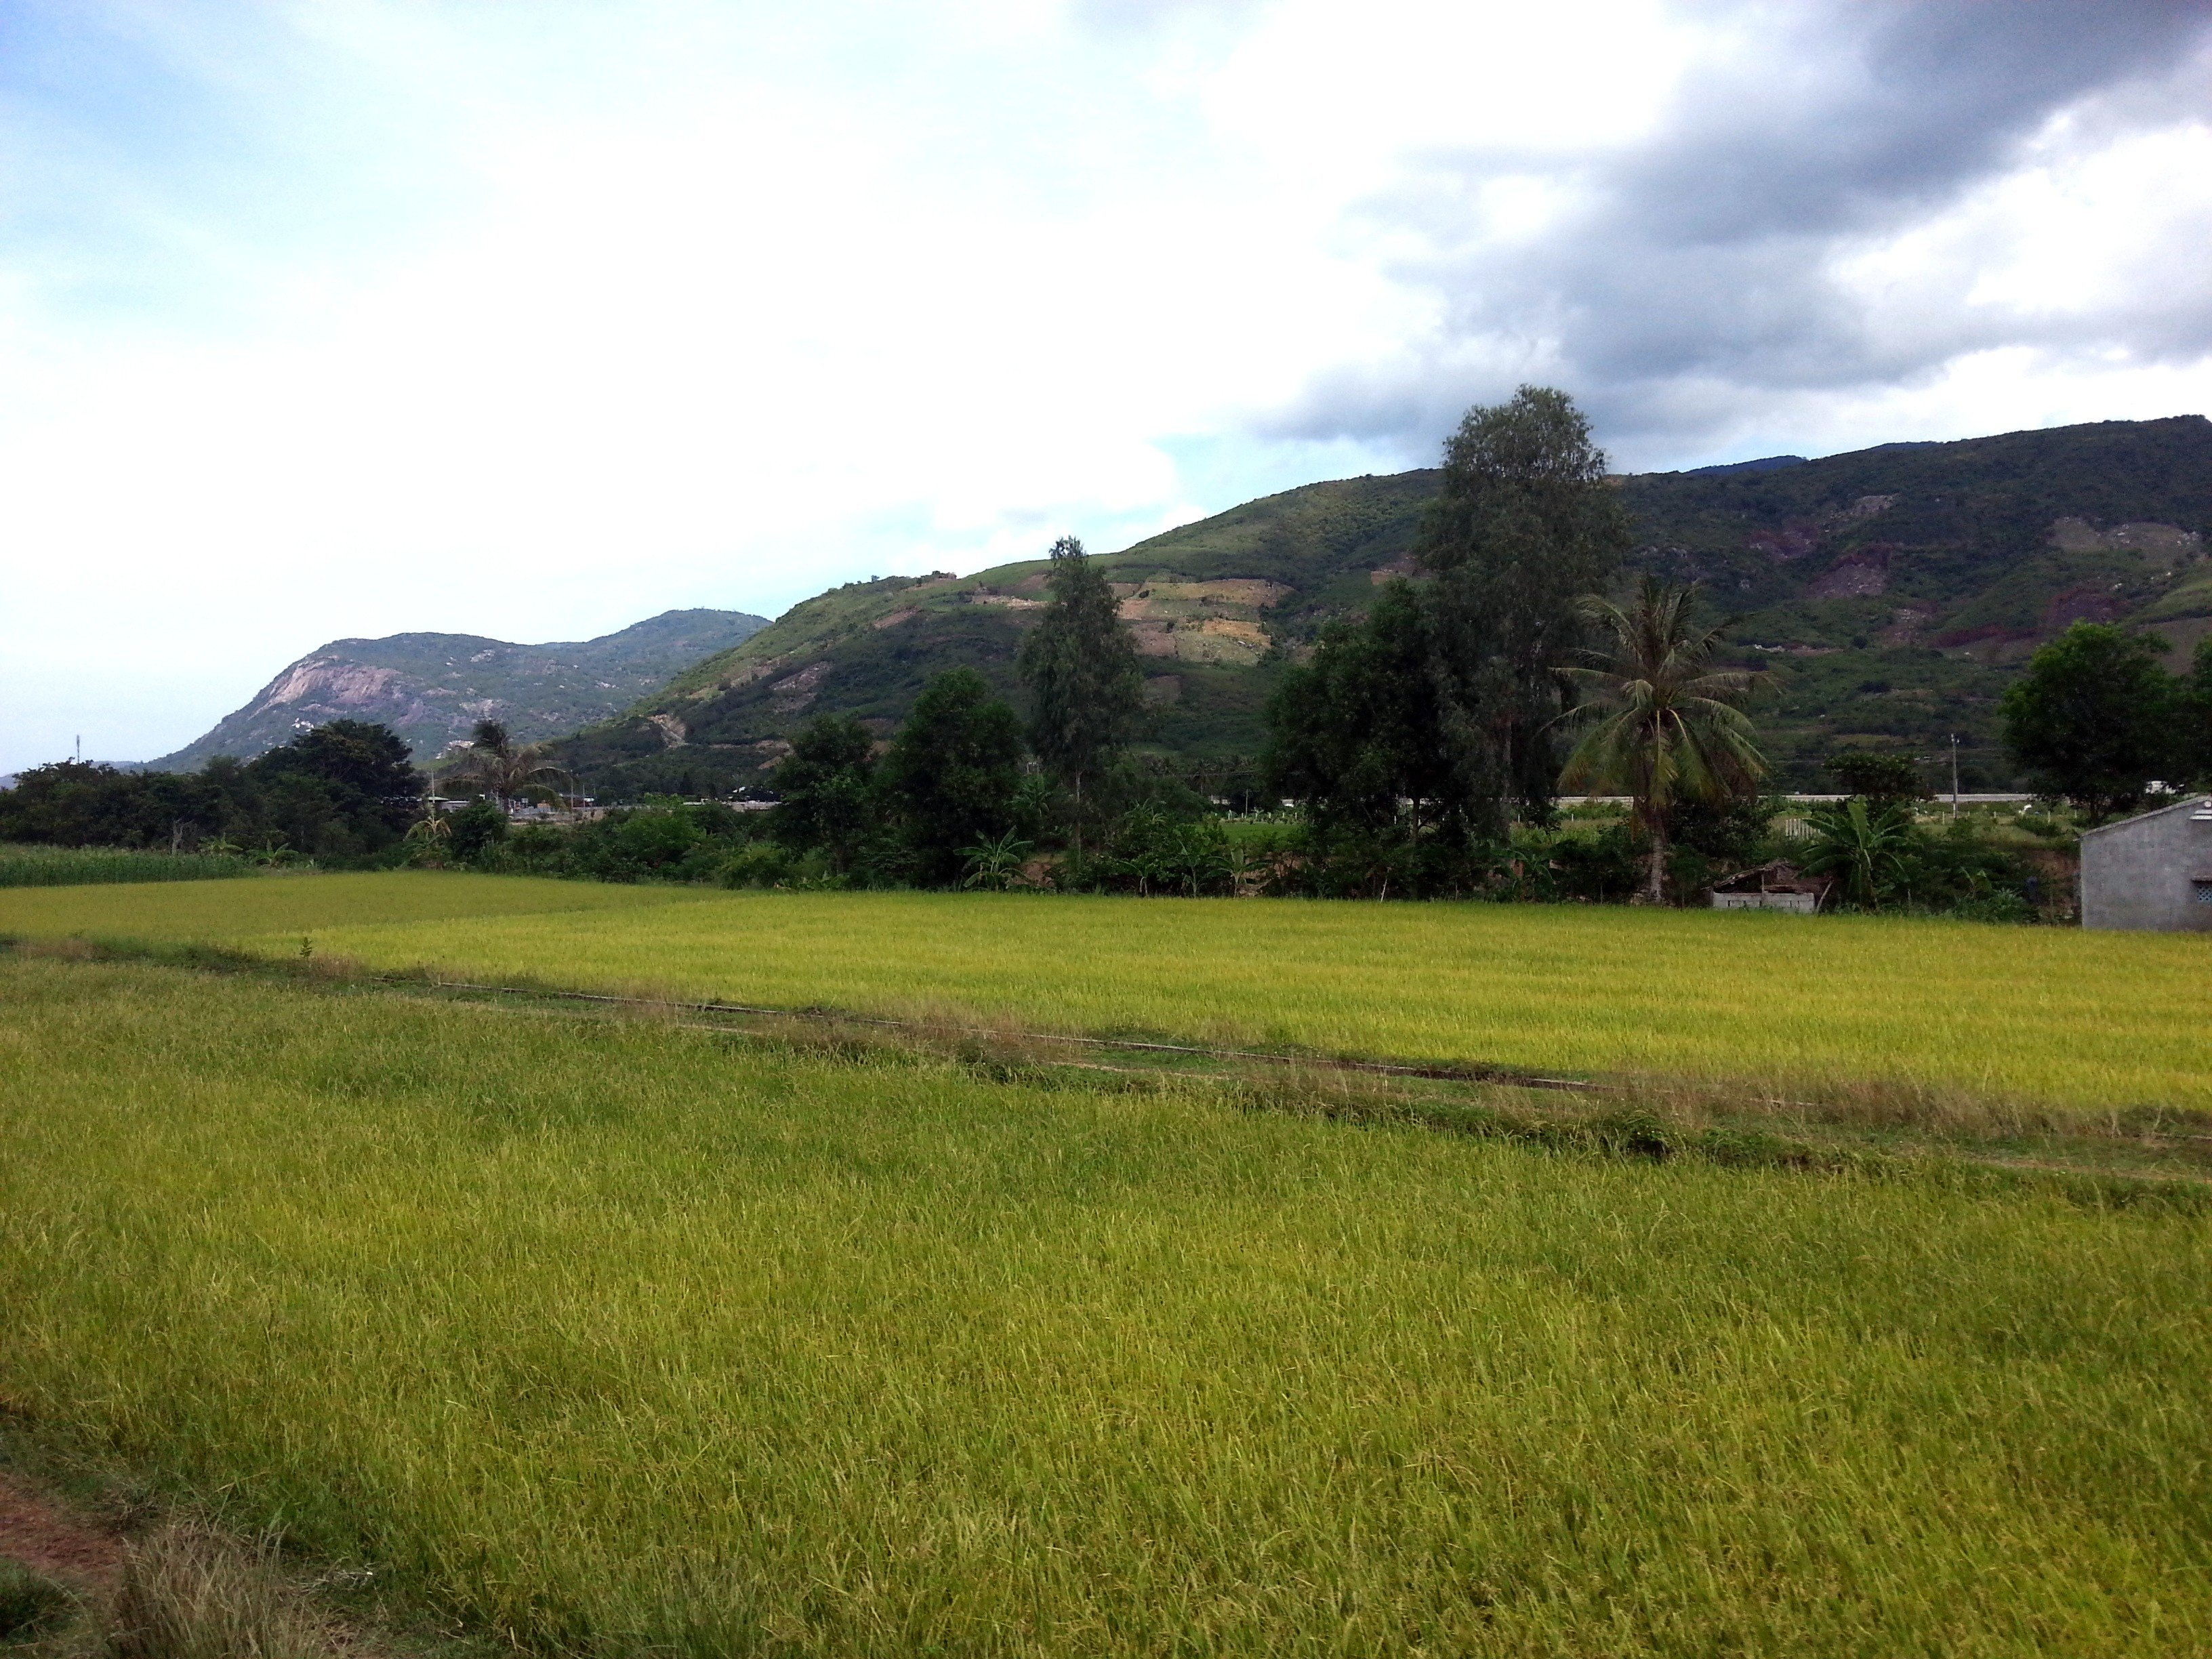 Rice fields on the way to Nha Trang